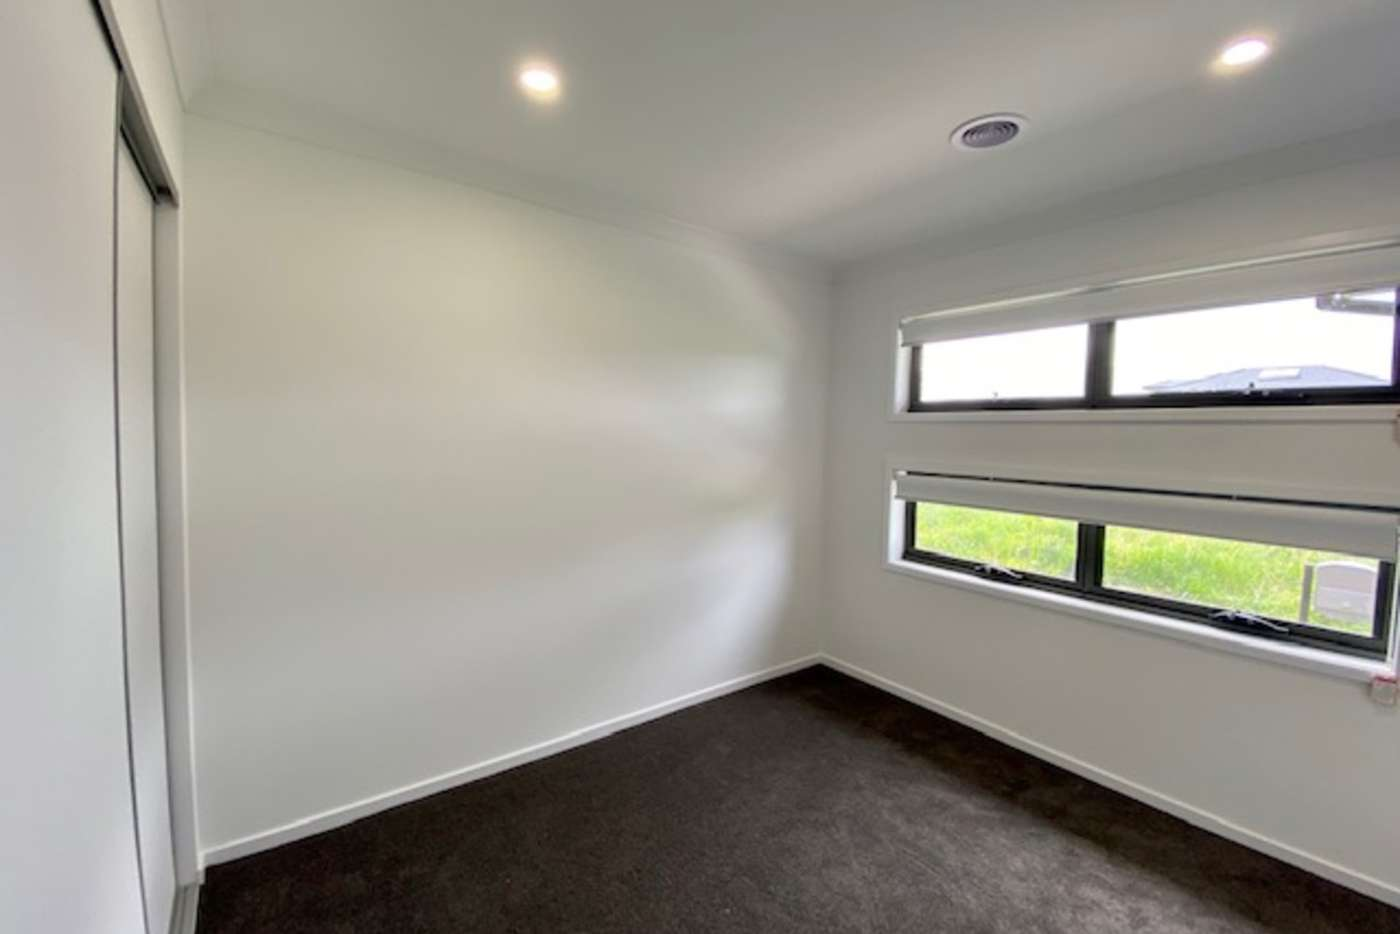 Sixth view of Homely house listing, 482 Casey Fields Boulevard, Cranbourne East VIC 3977